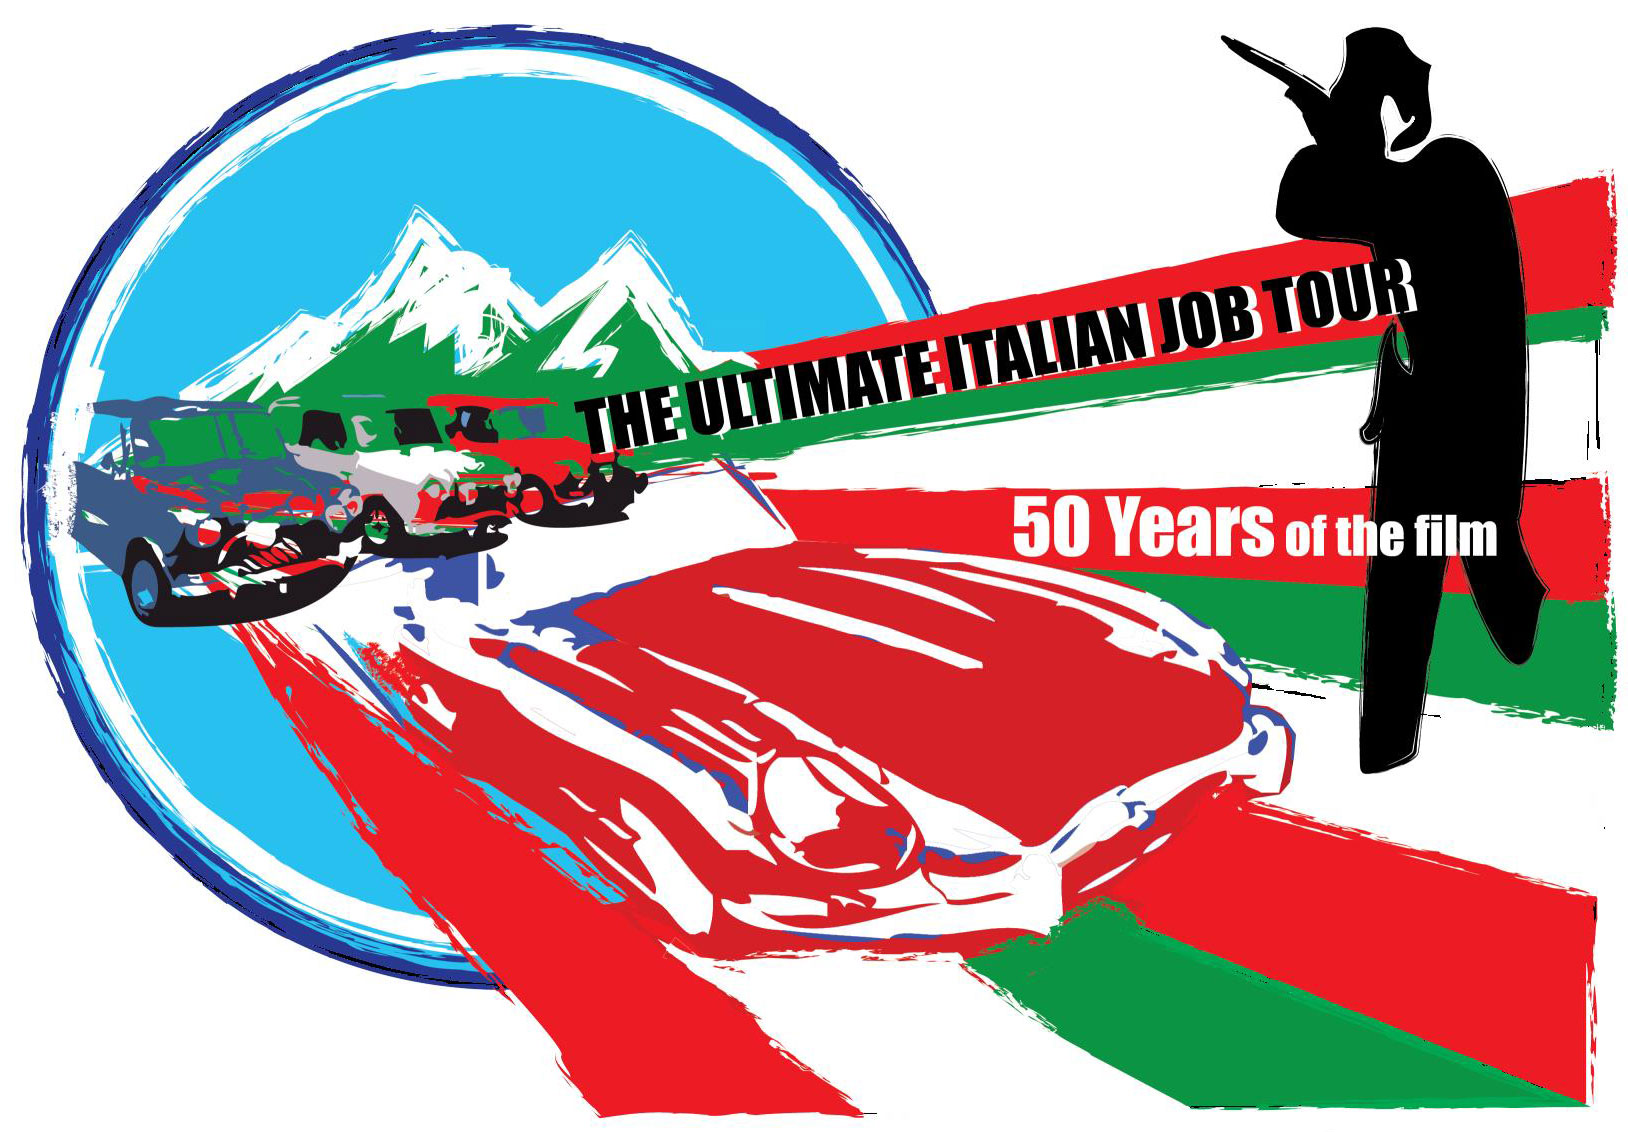 The Ultimate Italian Job Tour